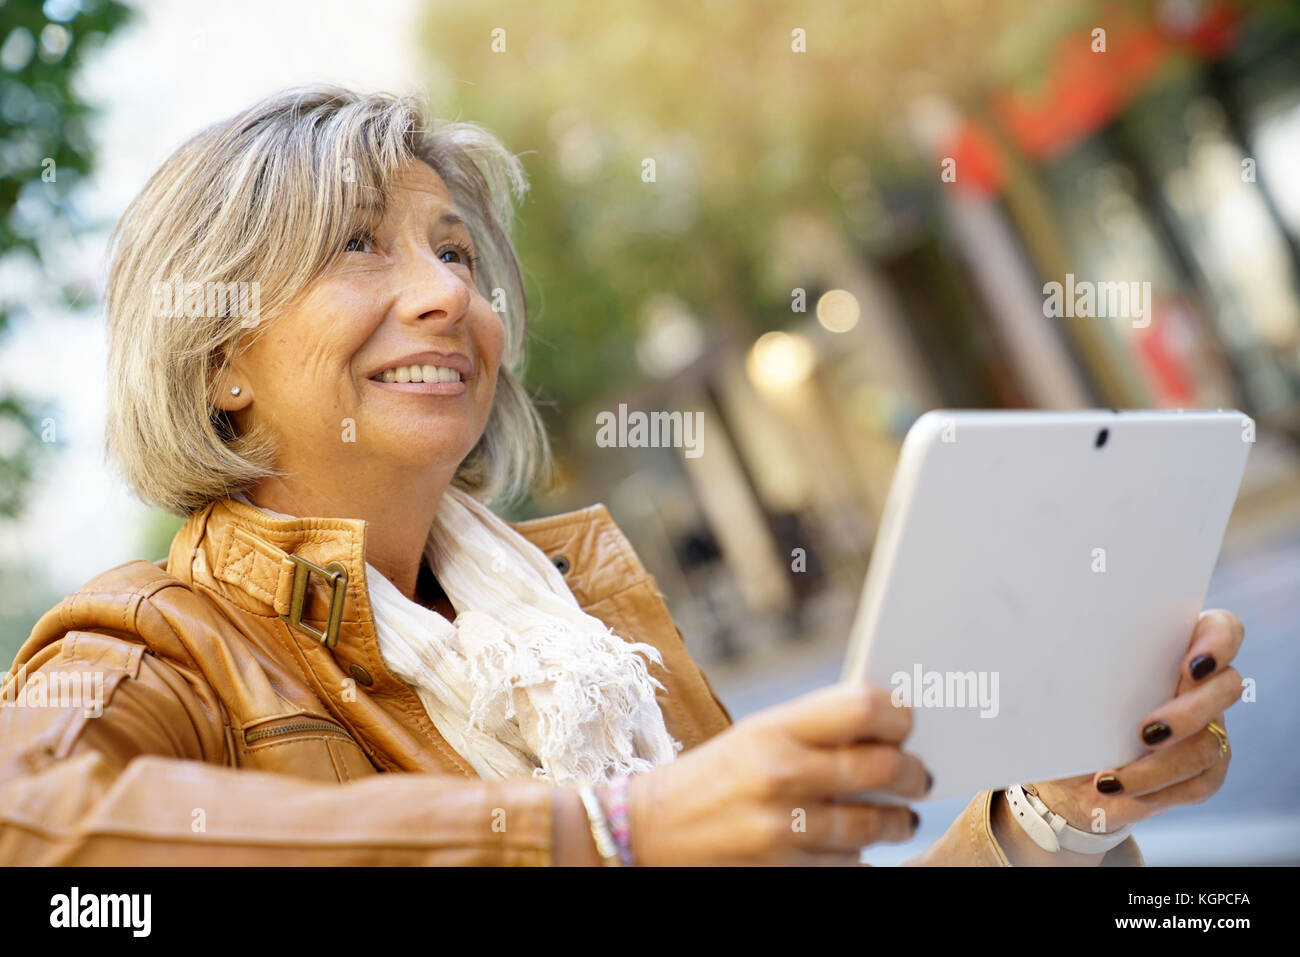 Senior woman in town using digital tablet - Stock Image